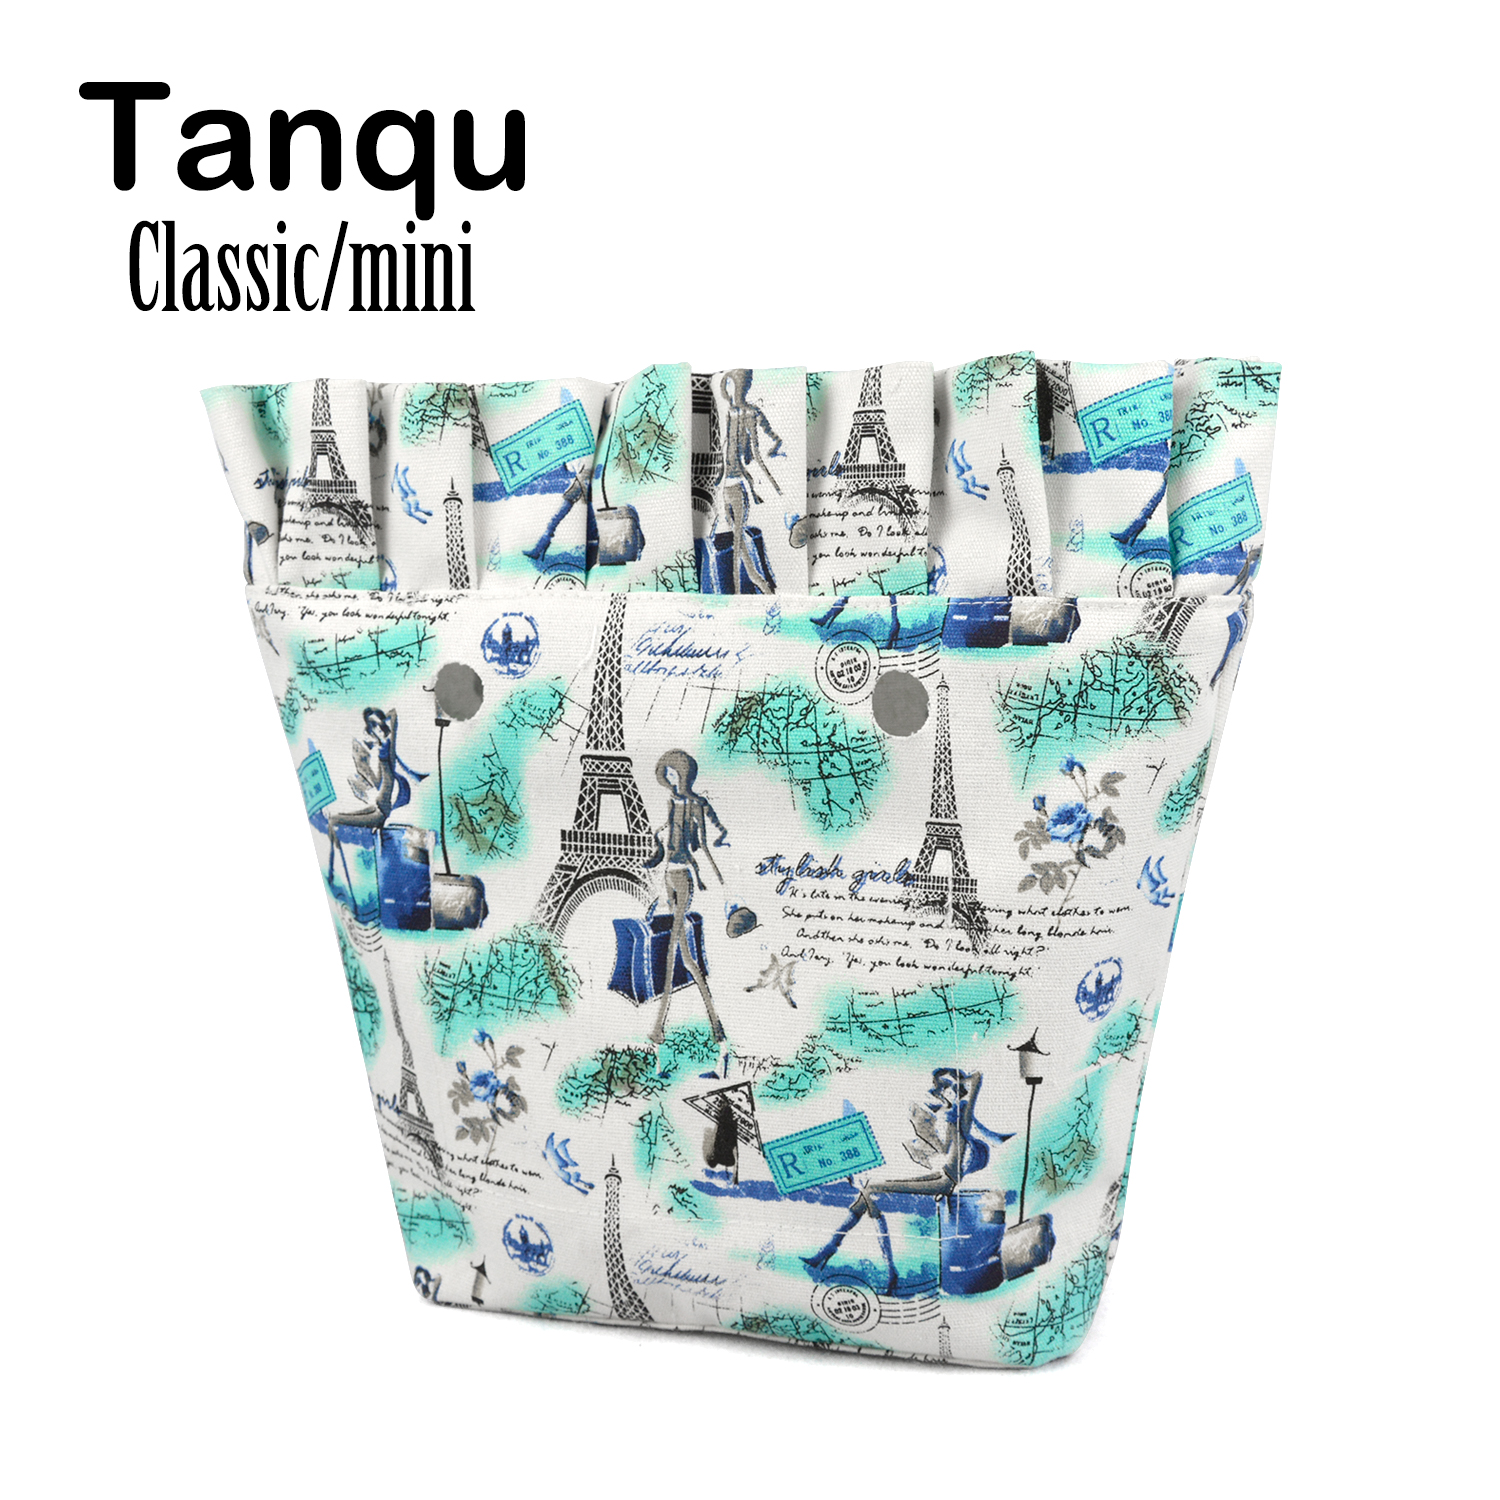 TANQU New Frill Pleat Ruffle Classic Mini Colorful Zip-up Inner Lining Insert for Big Mini Obag Canvas Inner Pocket for O Bag a5 a6 dokibook notebook macaron fine faux leather spiral notebook diary week agenda organizer planner notepad office stationery